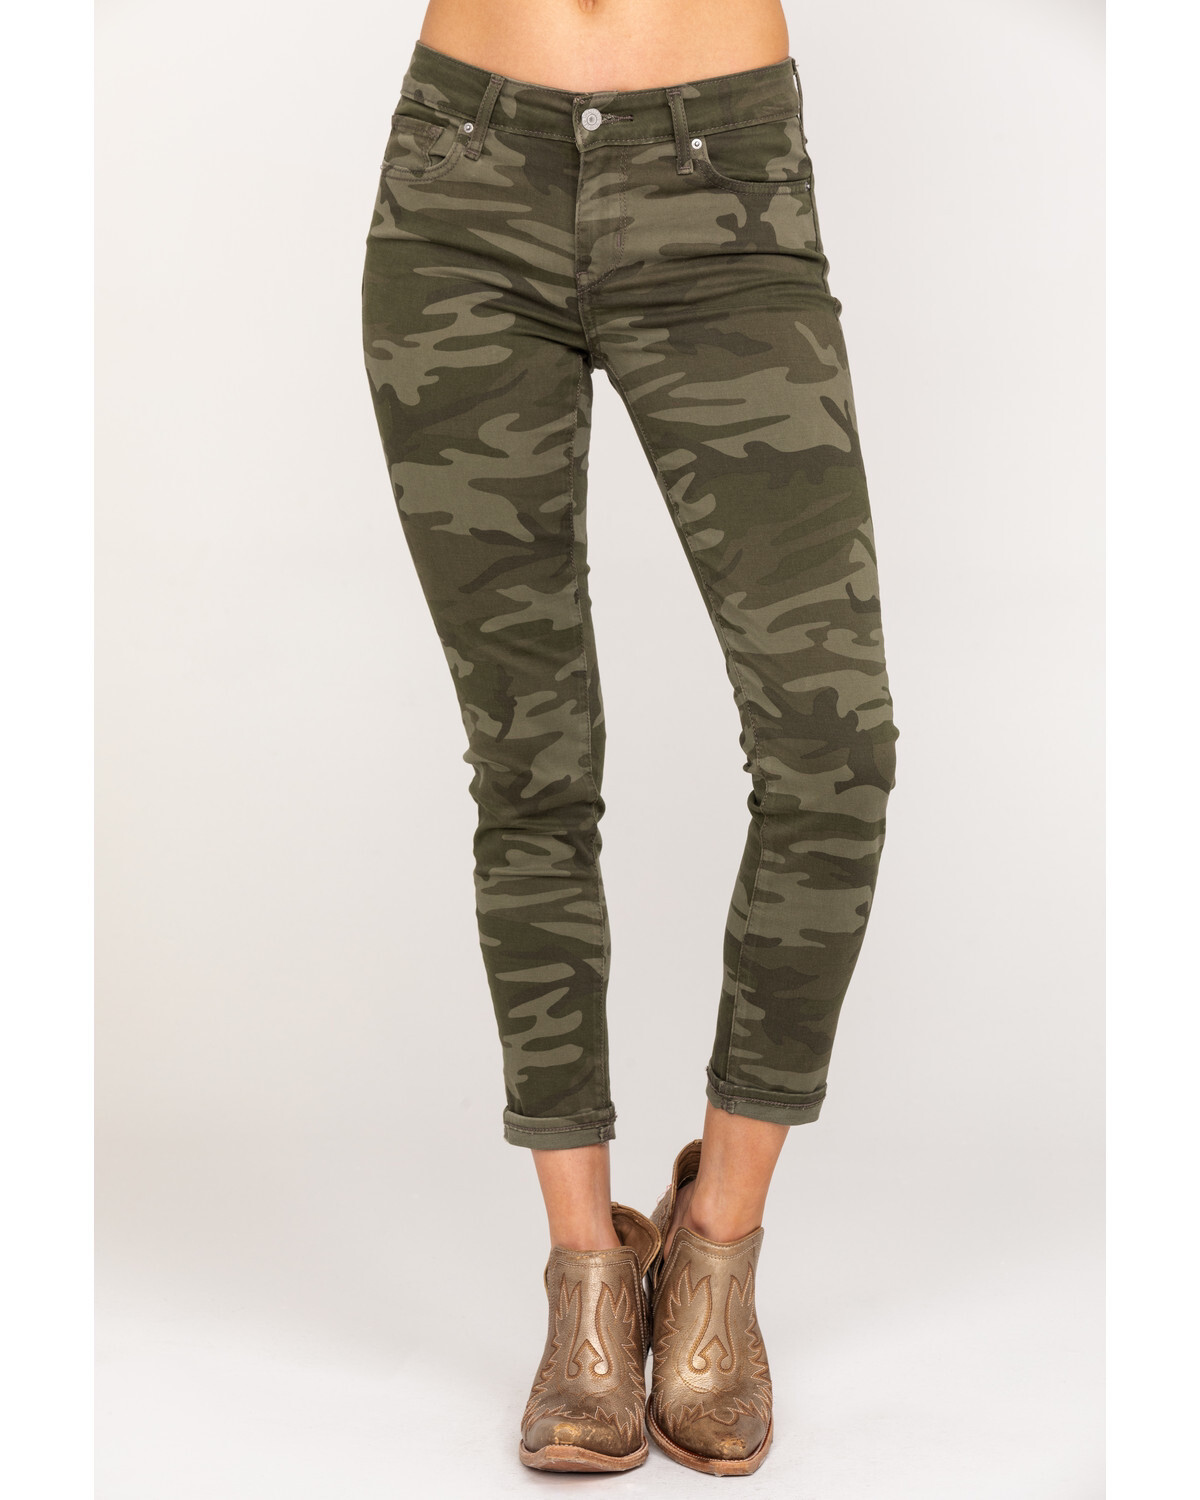 Levi's 711 Cropped Camo